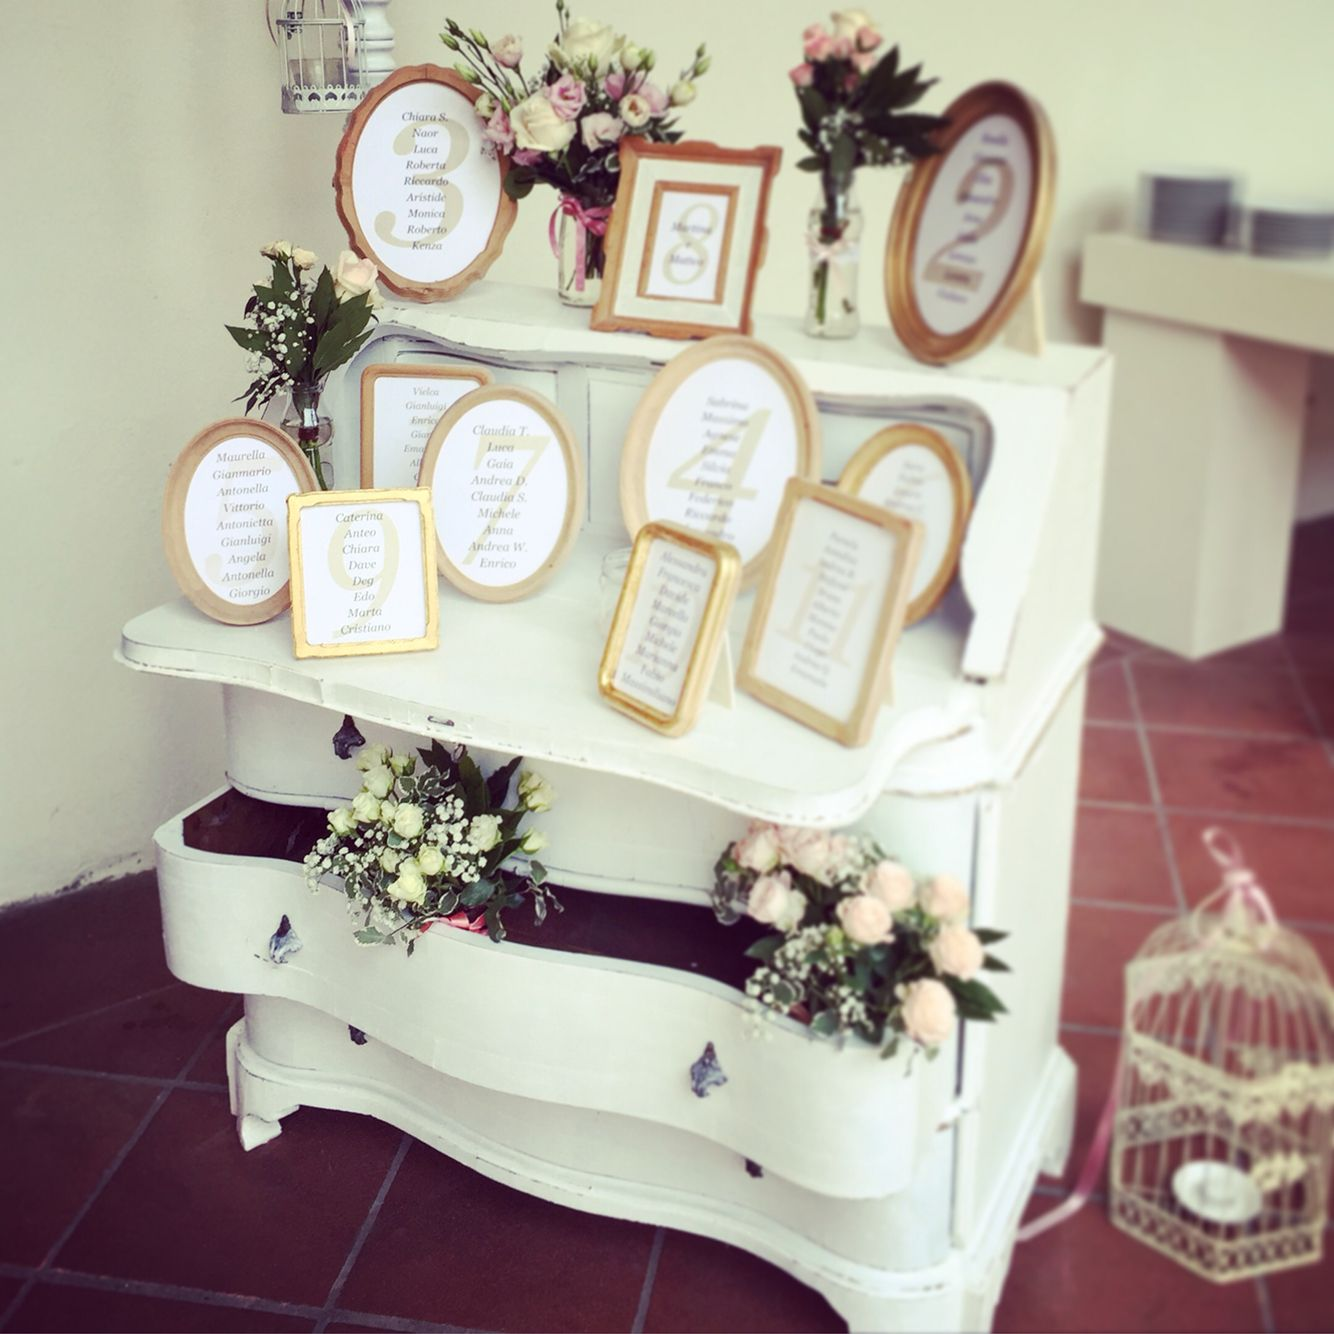 tableau de mariage shabby chic table plan white frame cornici decorative con indicati i nomi. Black Bedroom Furniture Sets. Home Design Ideas